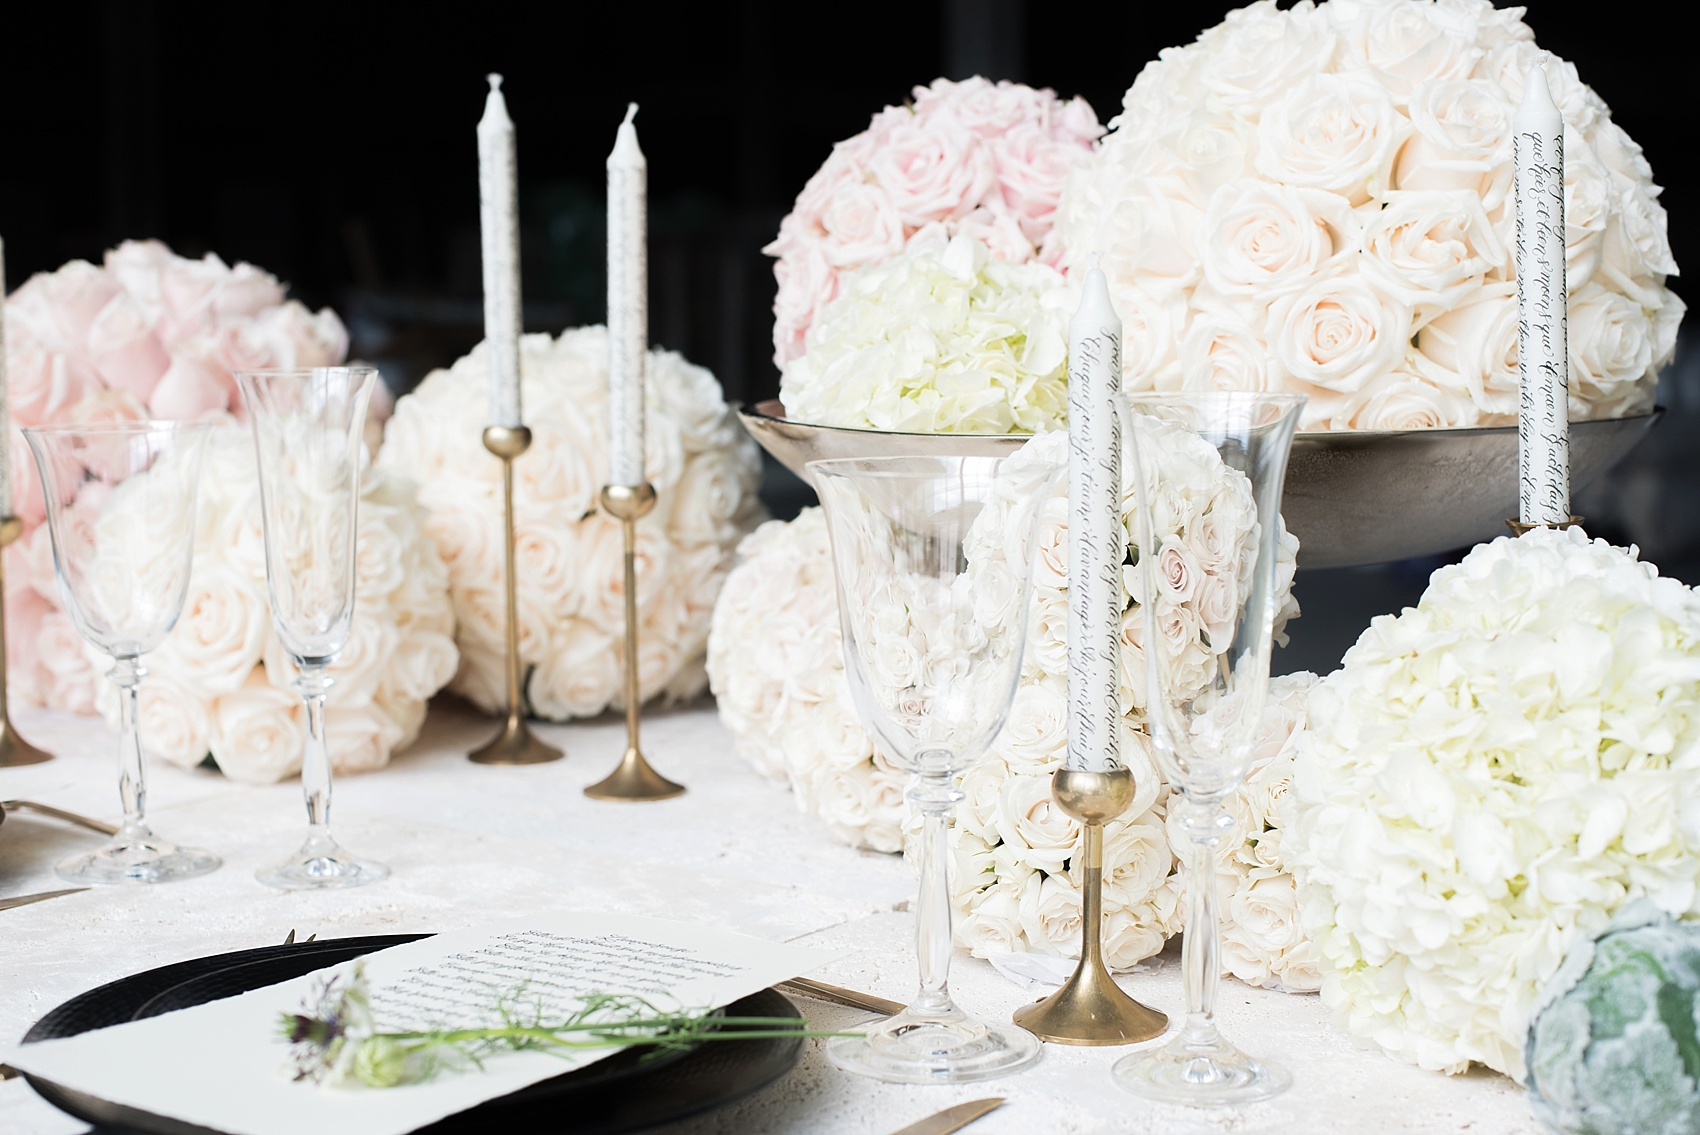 Destination wedding photographer Mikkel Paige captures a glamorous industrial bridal session in Hawaii with Burnett's Boards and Moana Events. White and pink pomander flower spheres adorn the sweetheart table with calligraphy candles.